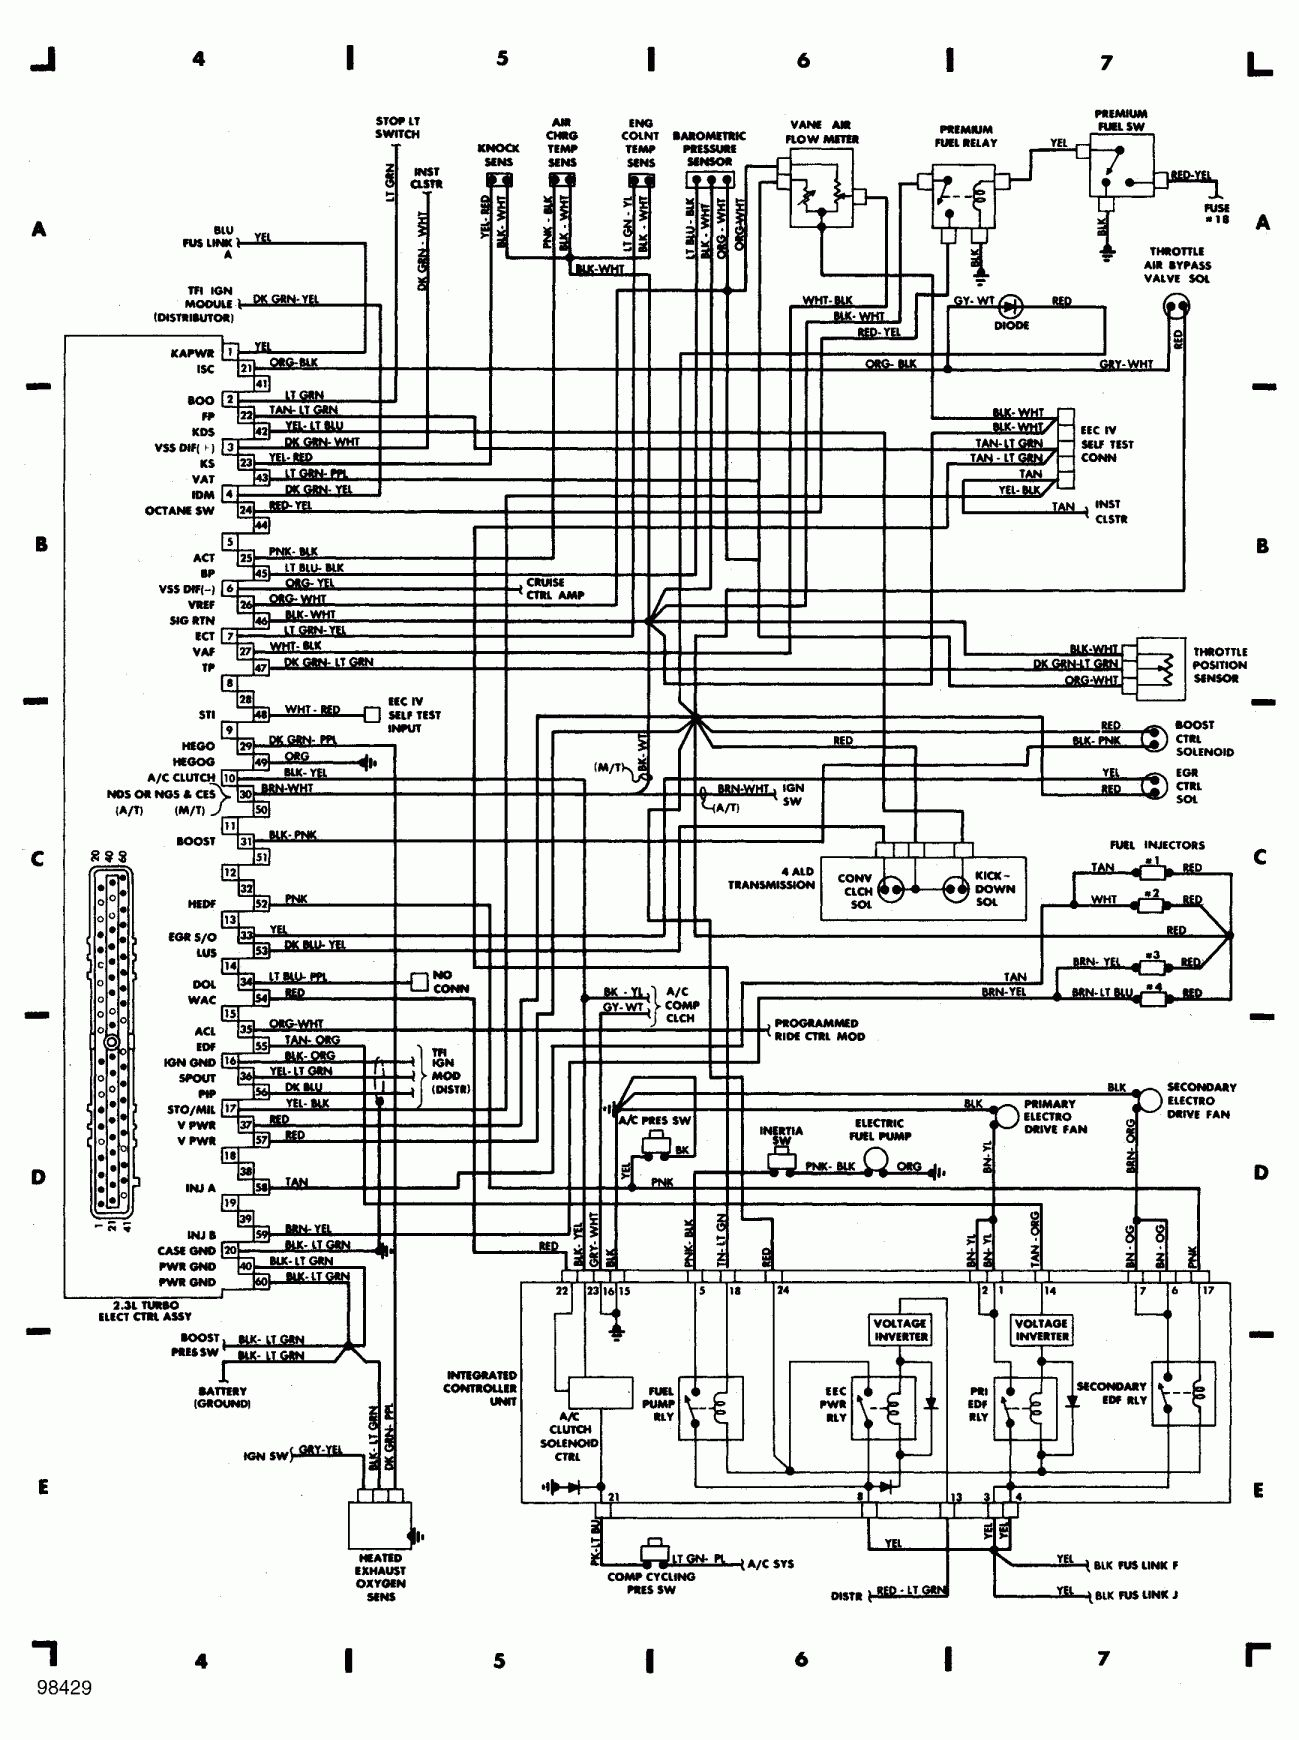 94 Camaro Wiring Diagram